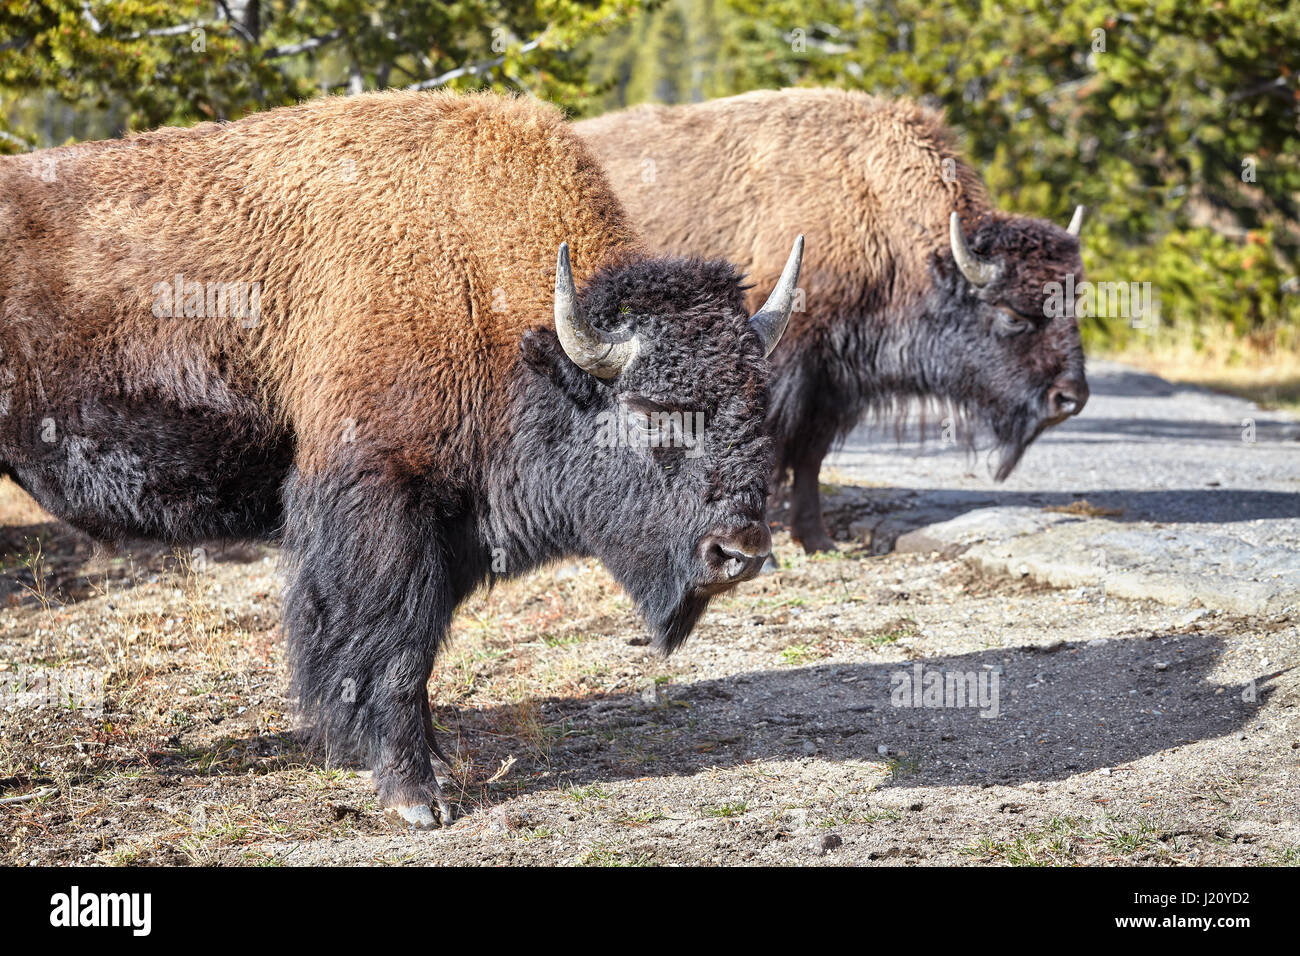 Two American bison (Bison bison) in Yellowstone National Park, Wyoming, USA. - Stock Image